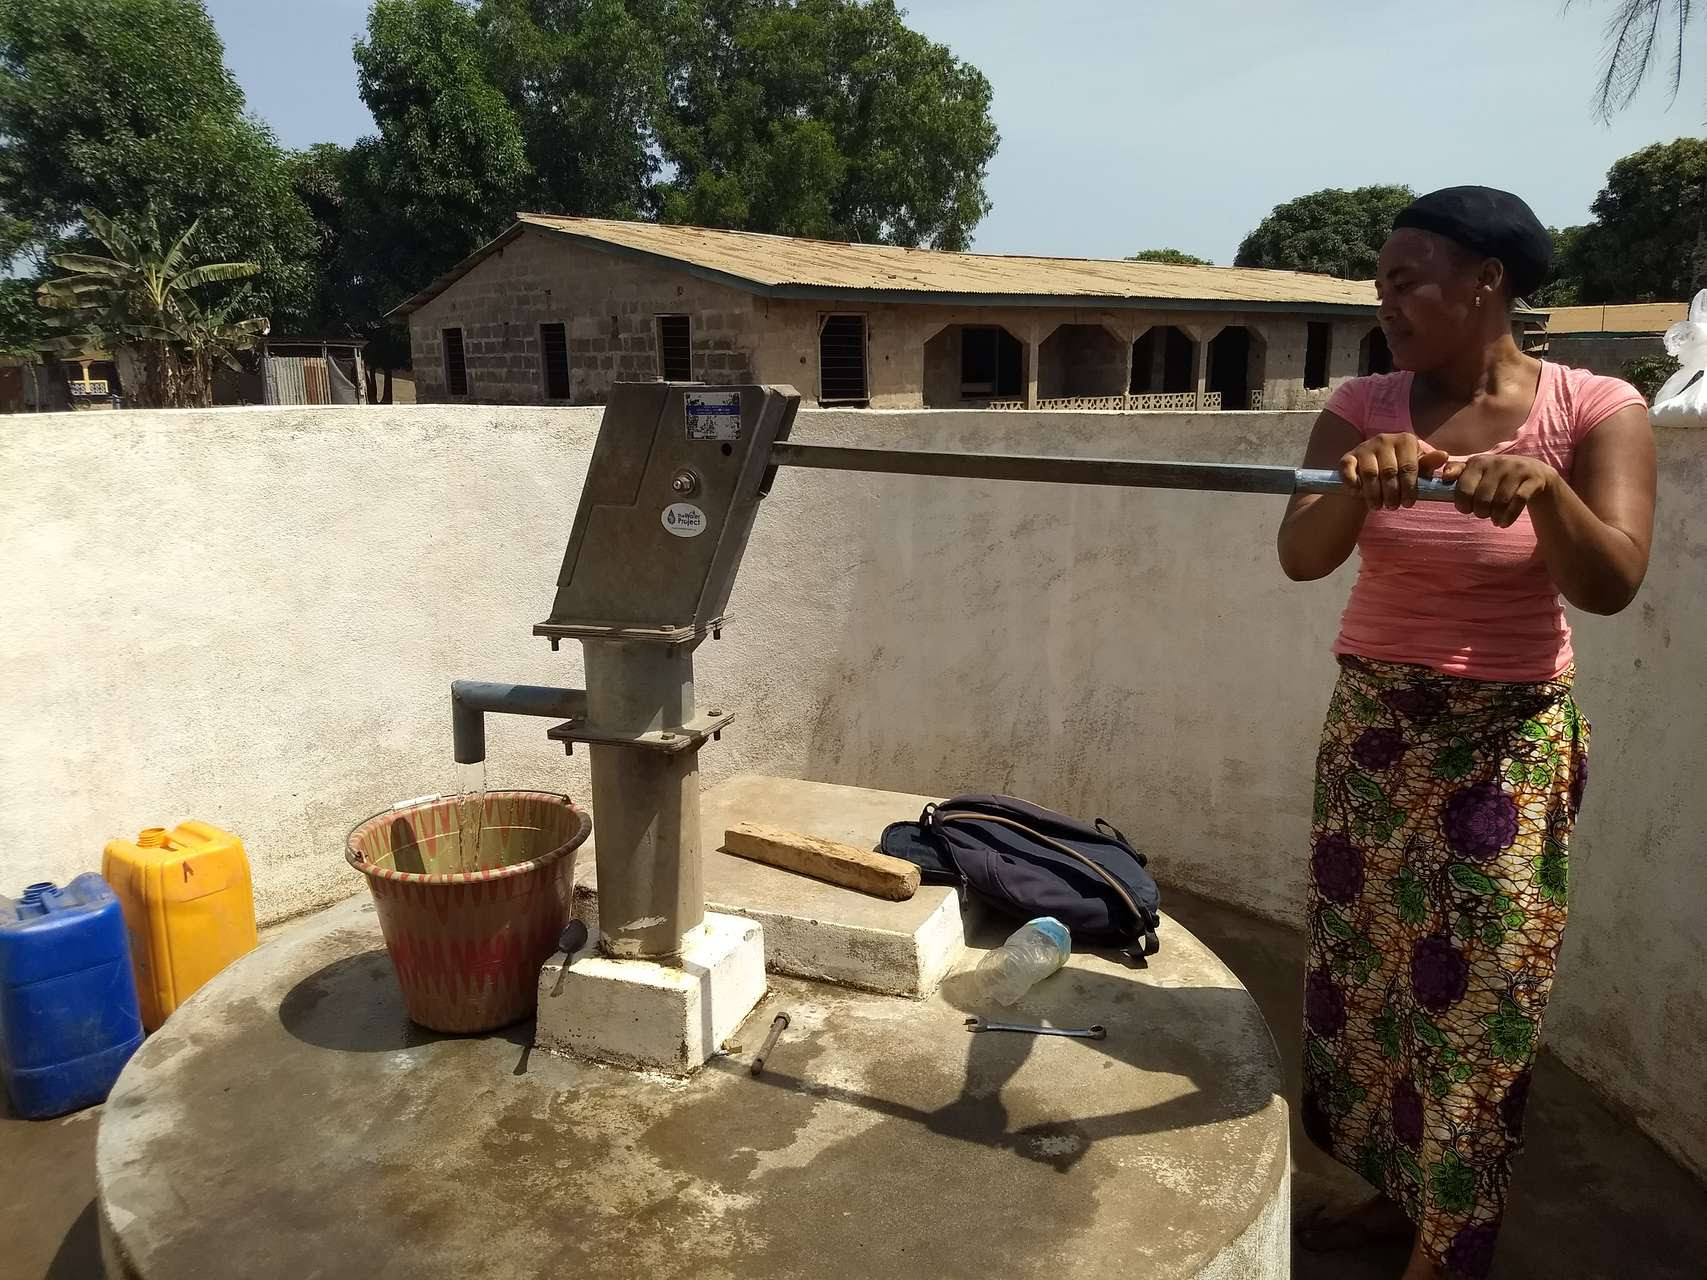 NEW update from the Water Project in Sierra Leone - See how Nandansons Charitable Foundation helped!